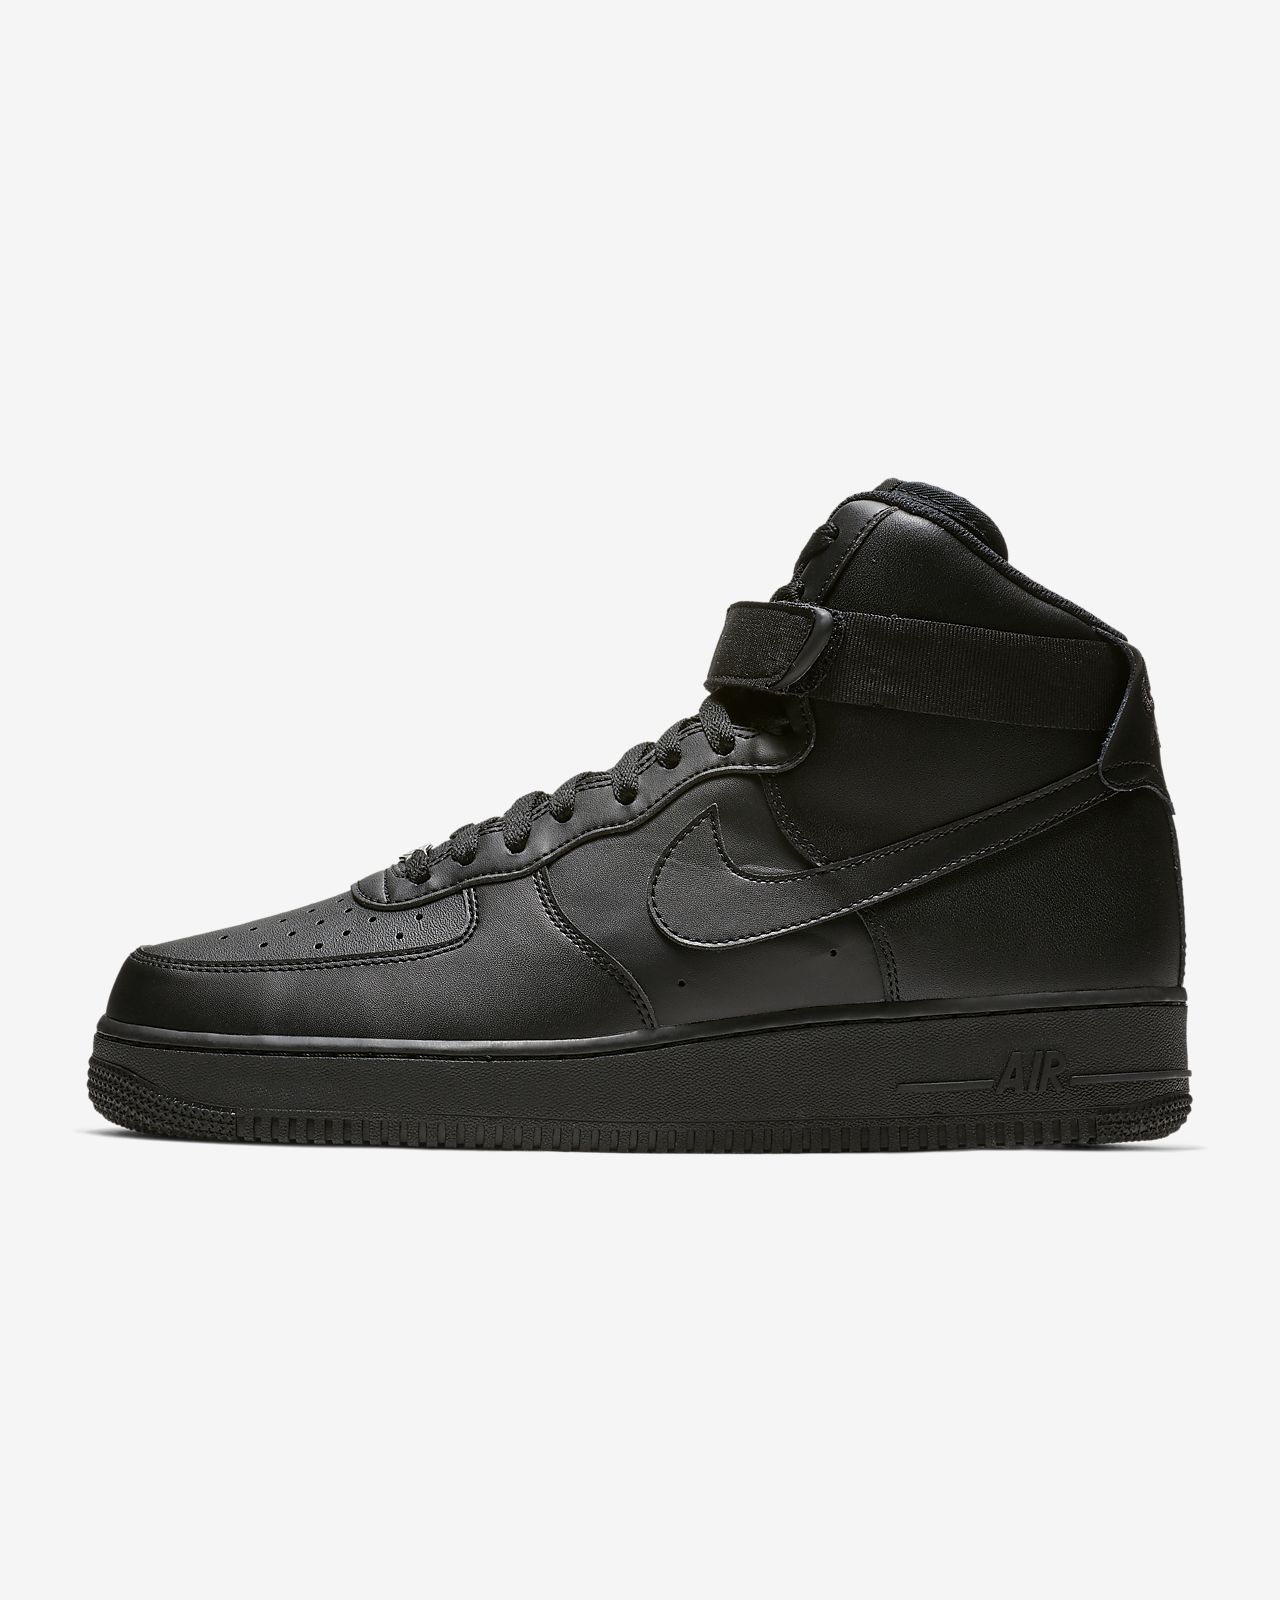 promo code e2fa4 d1ac5 Nike Air Force 1 High 07